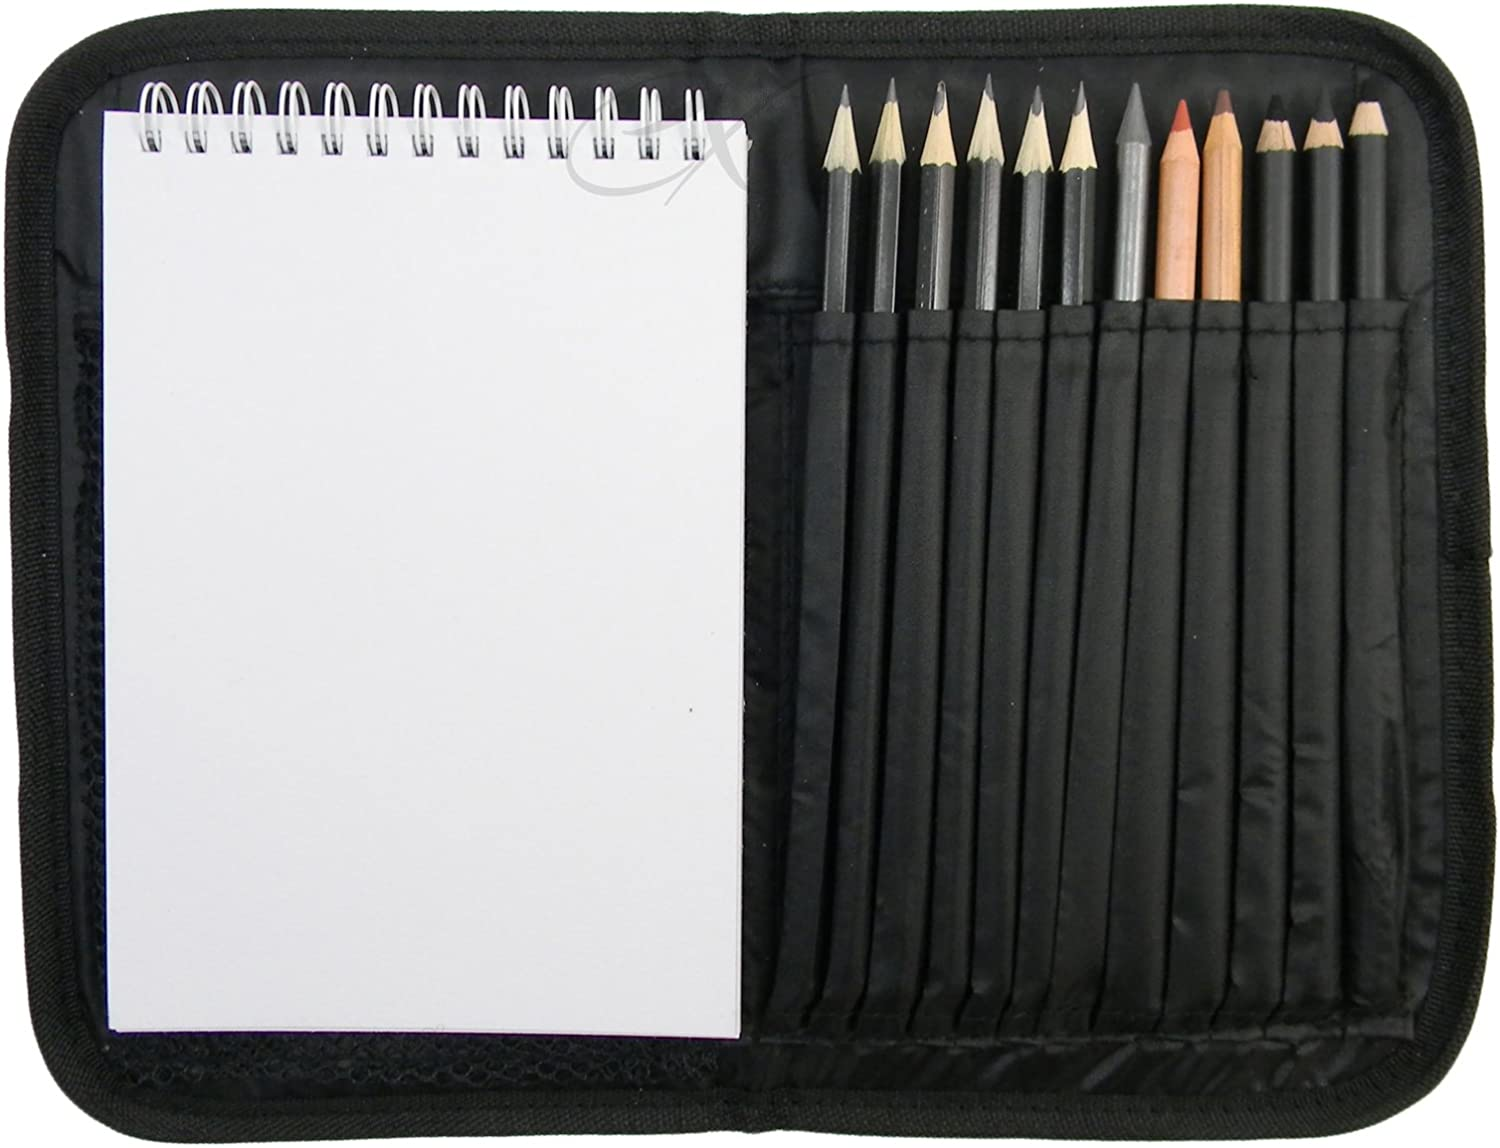 Compact and Portable Sketch Folio 1 Drawing Kit with Art Supplies Nicole PRO 3077